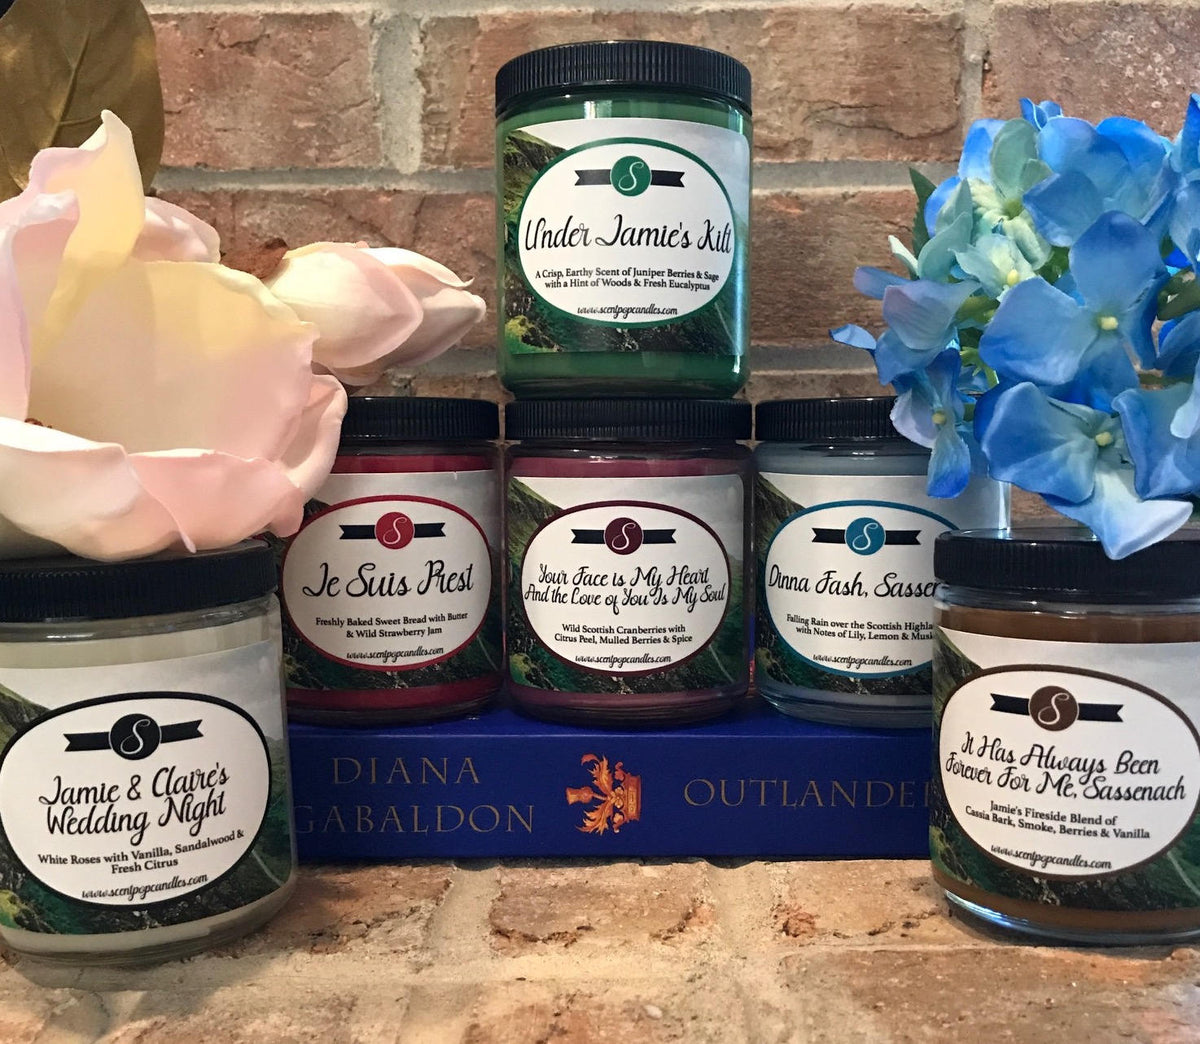 Jamie & Claire's Wedding Night, Outlander Inspired Soy Candle